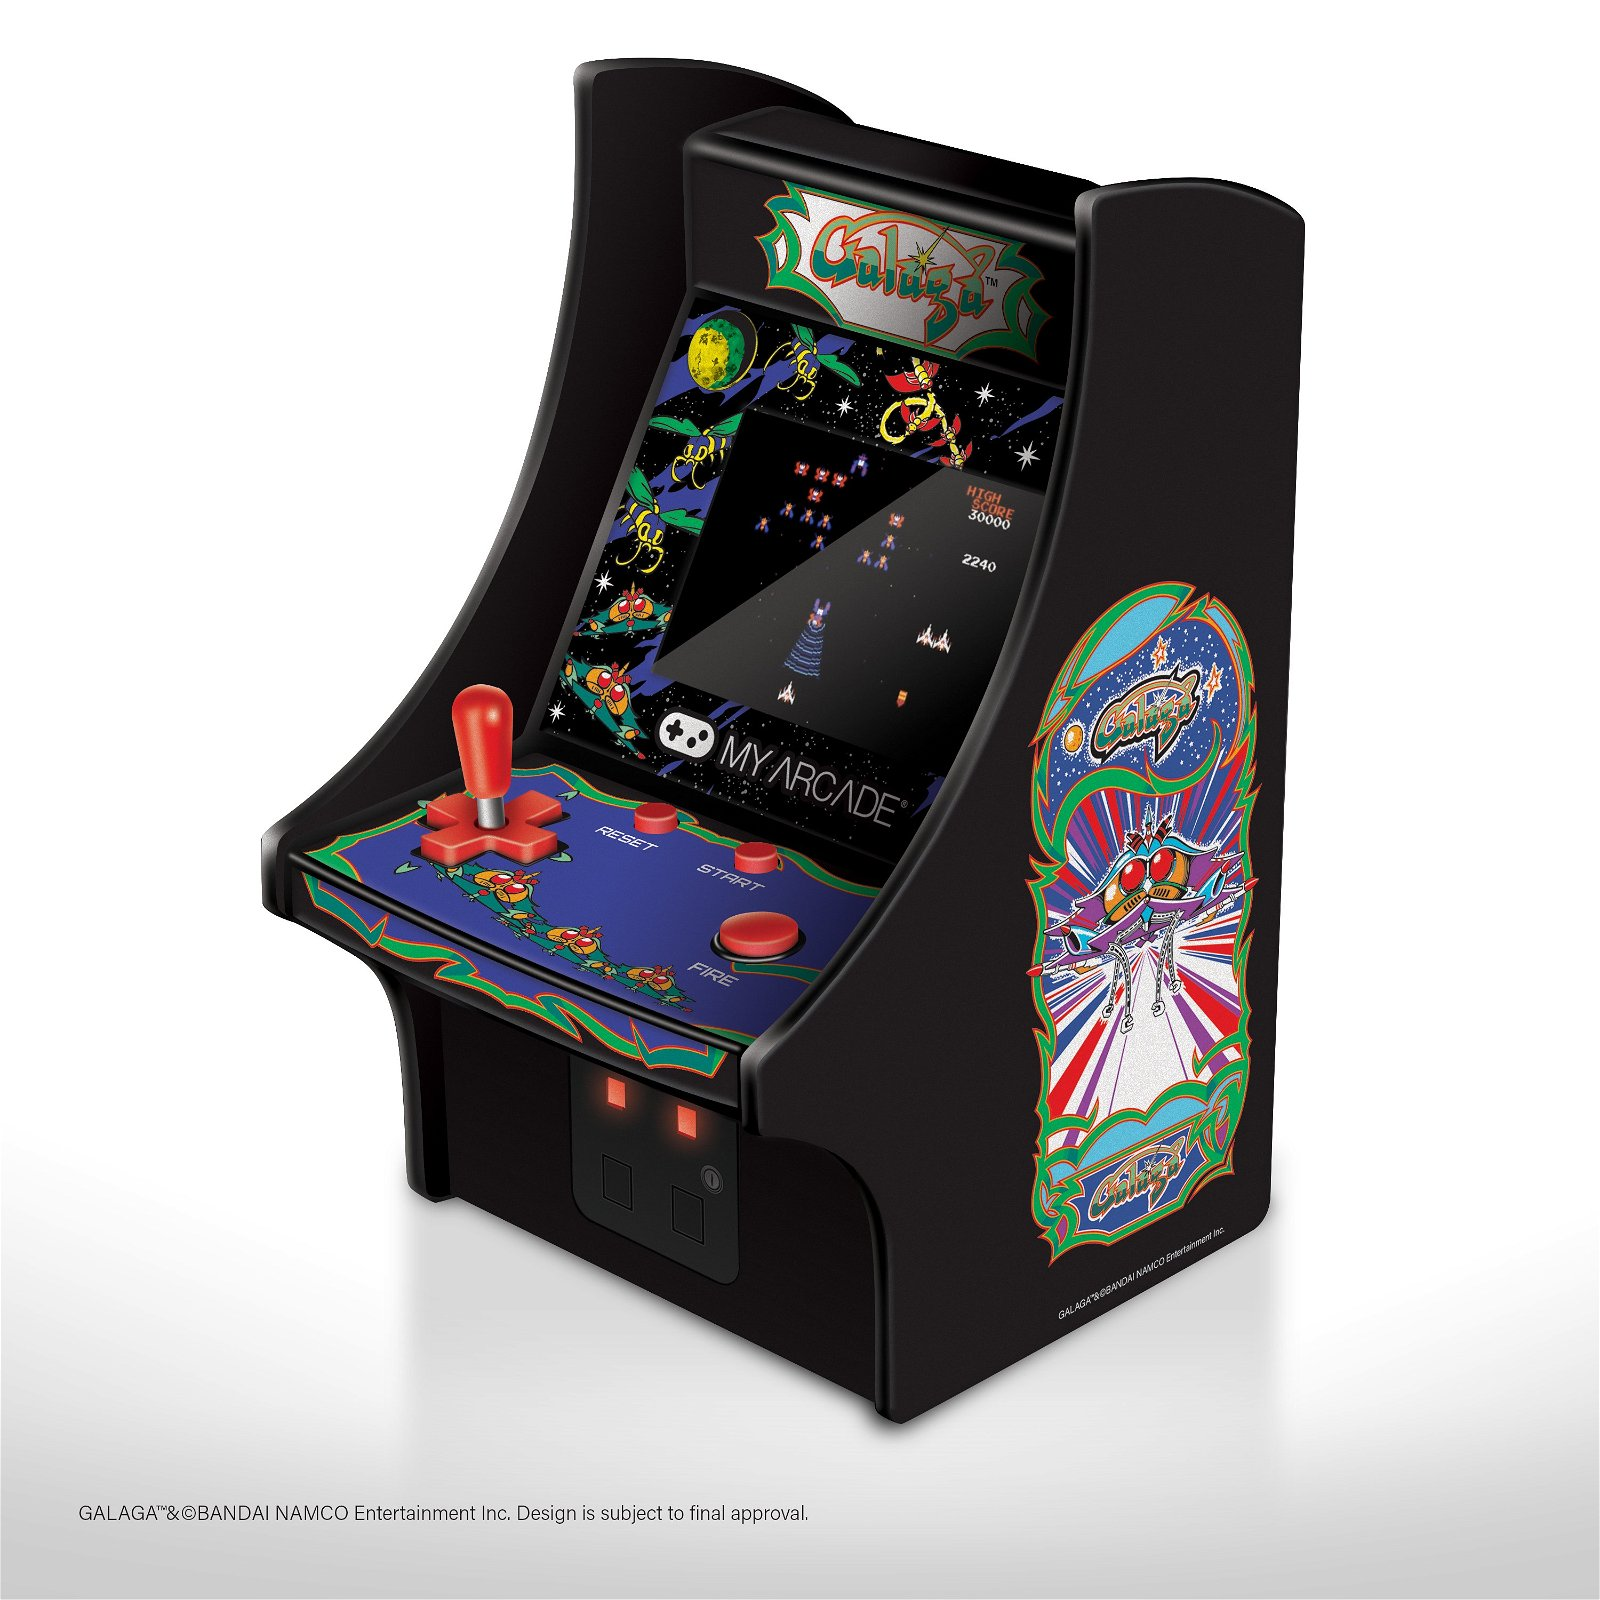 MY ARCADE DEBUTS NEW COLLECTIBLES LICENSED FROM BANDAI NAMCO ENTERTAINMENT AT CES 2018 2